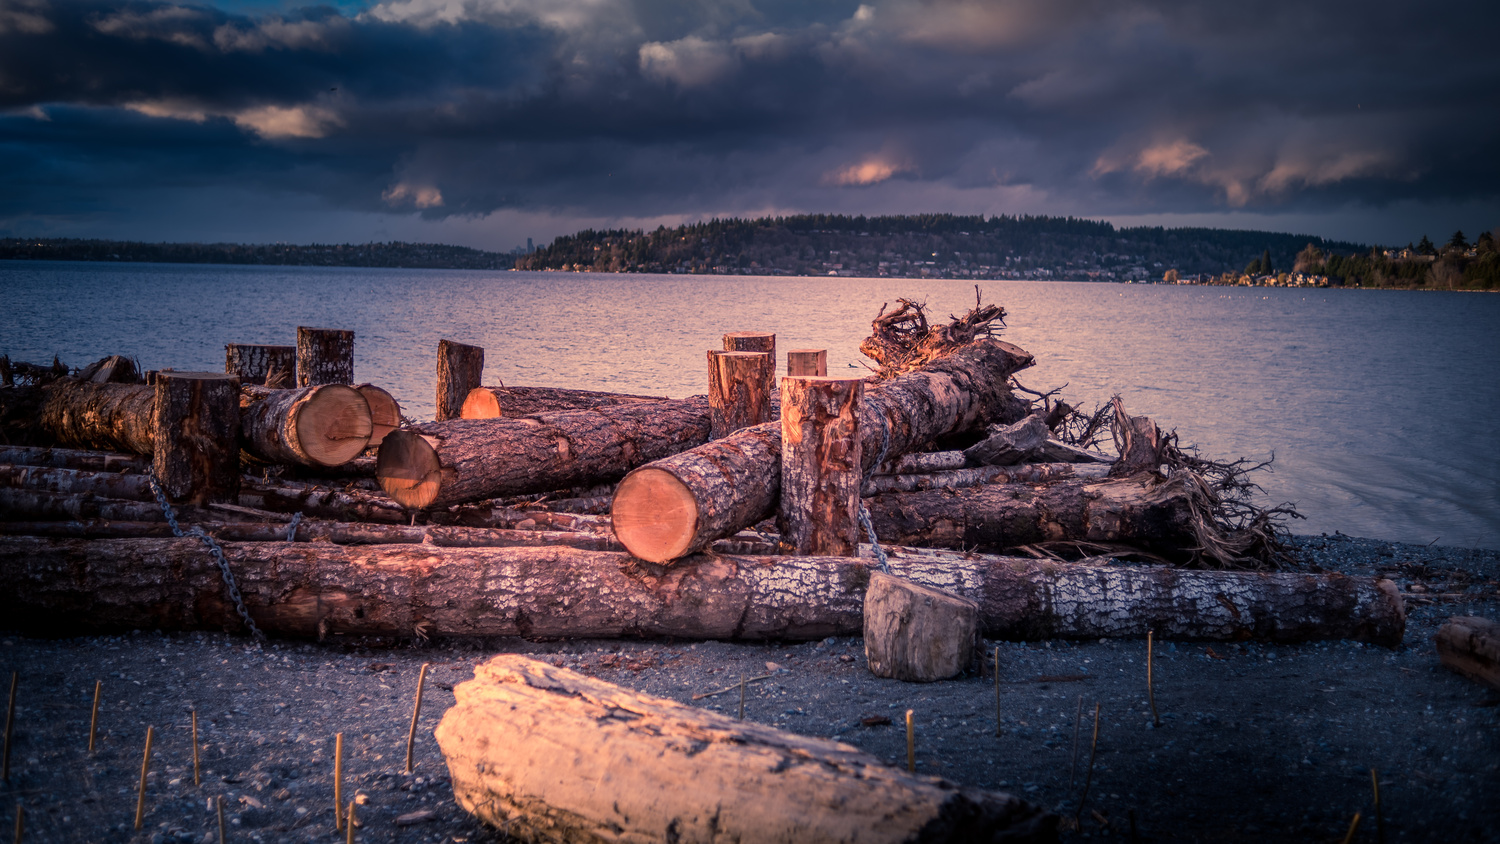 Logs by the Water by Harry Grewal